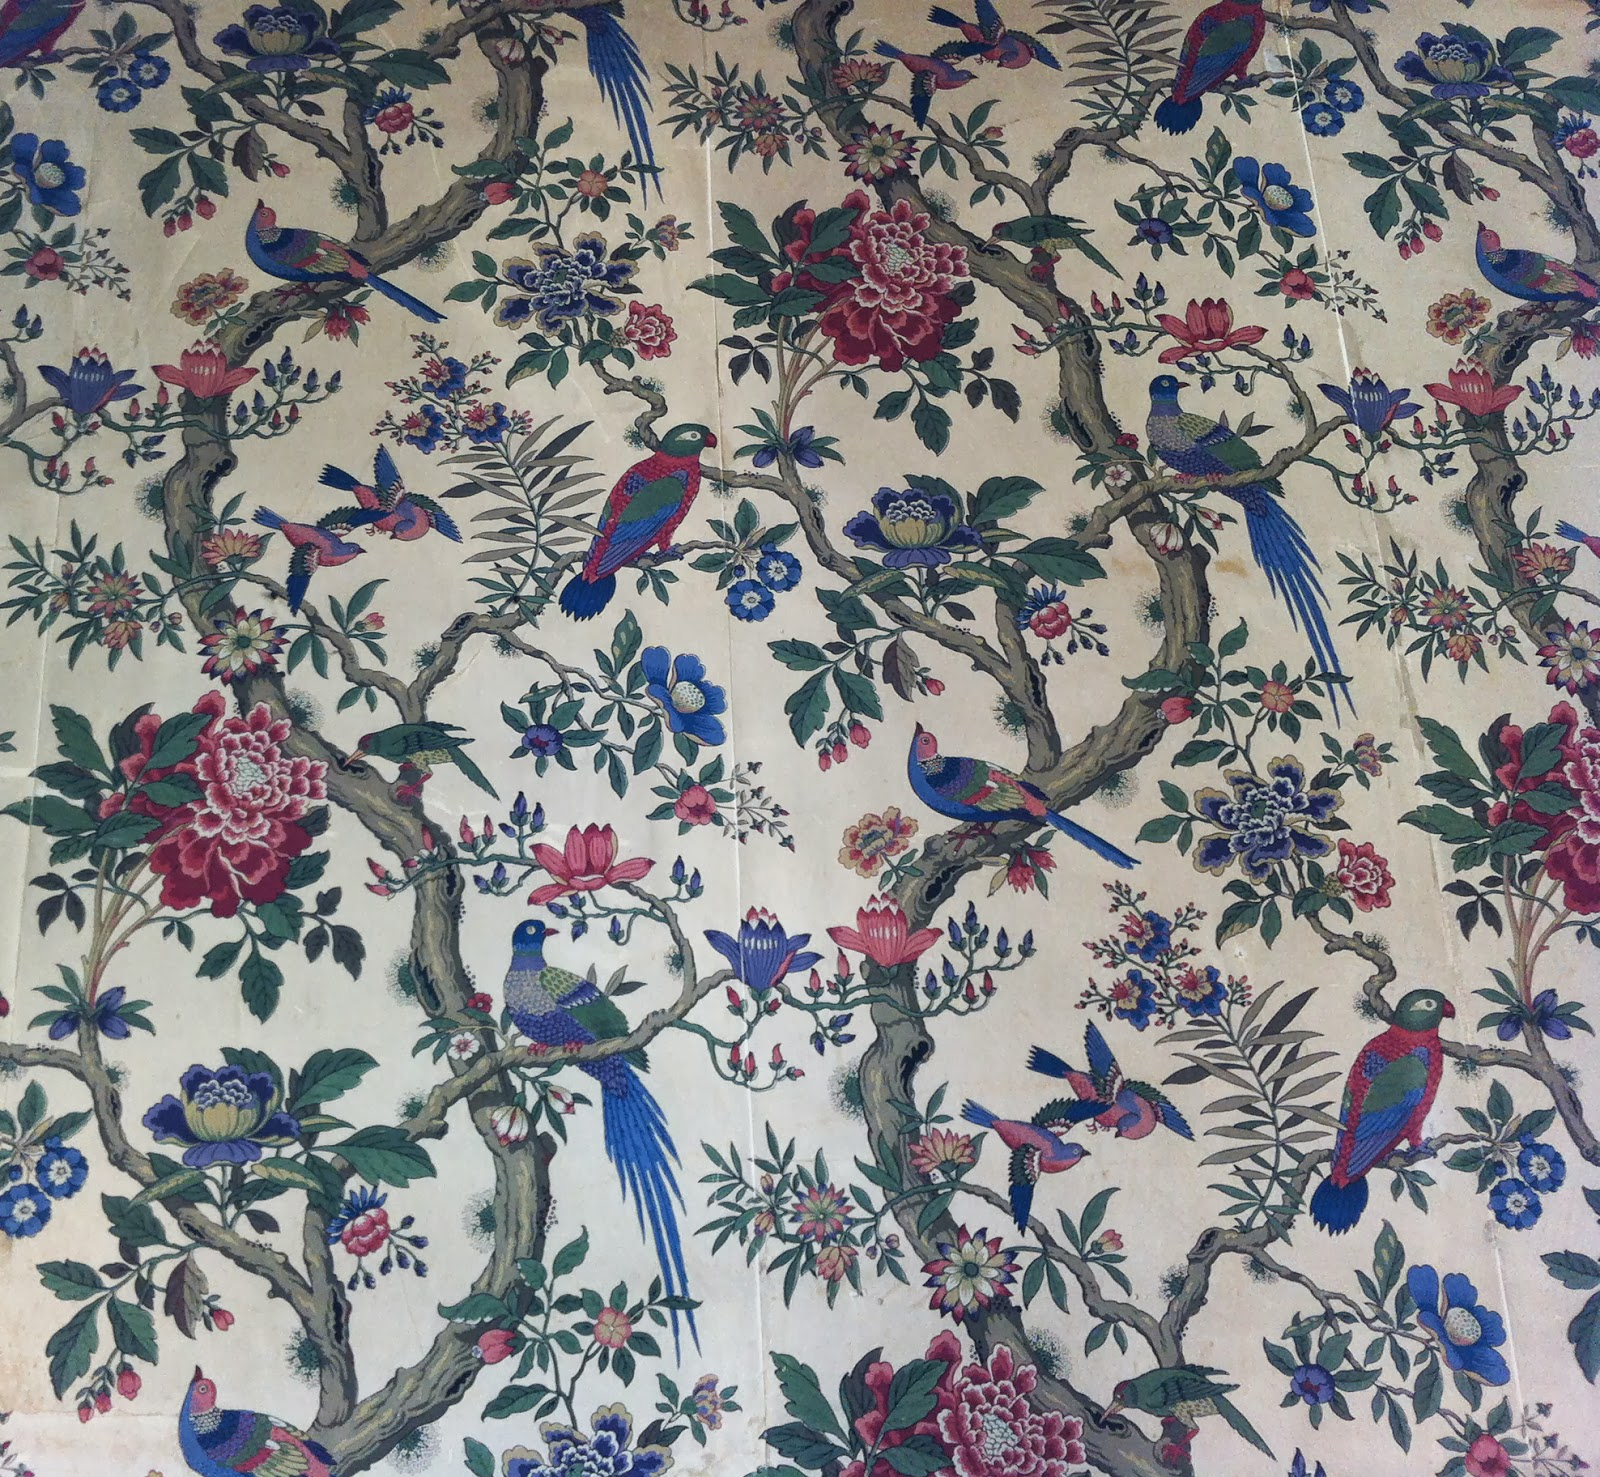 THE VIRTUAL VICTORIAN: WALLPAPER AT ENDSLEIGH HOUSE